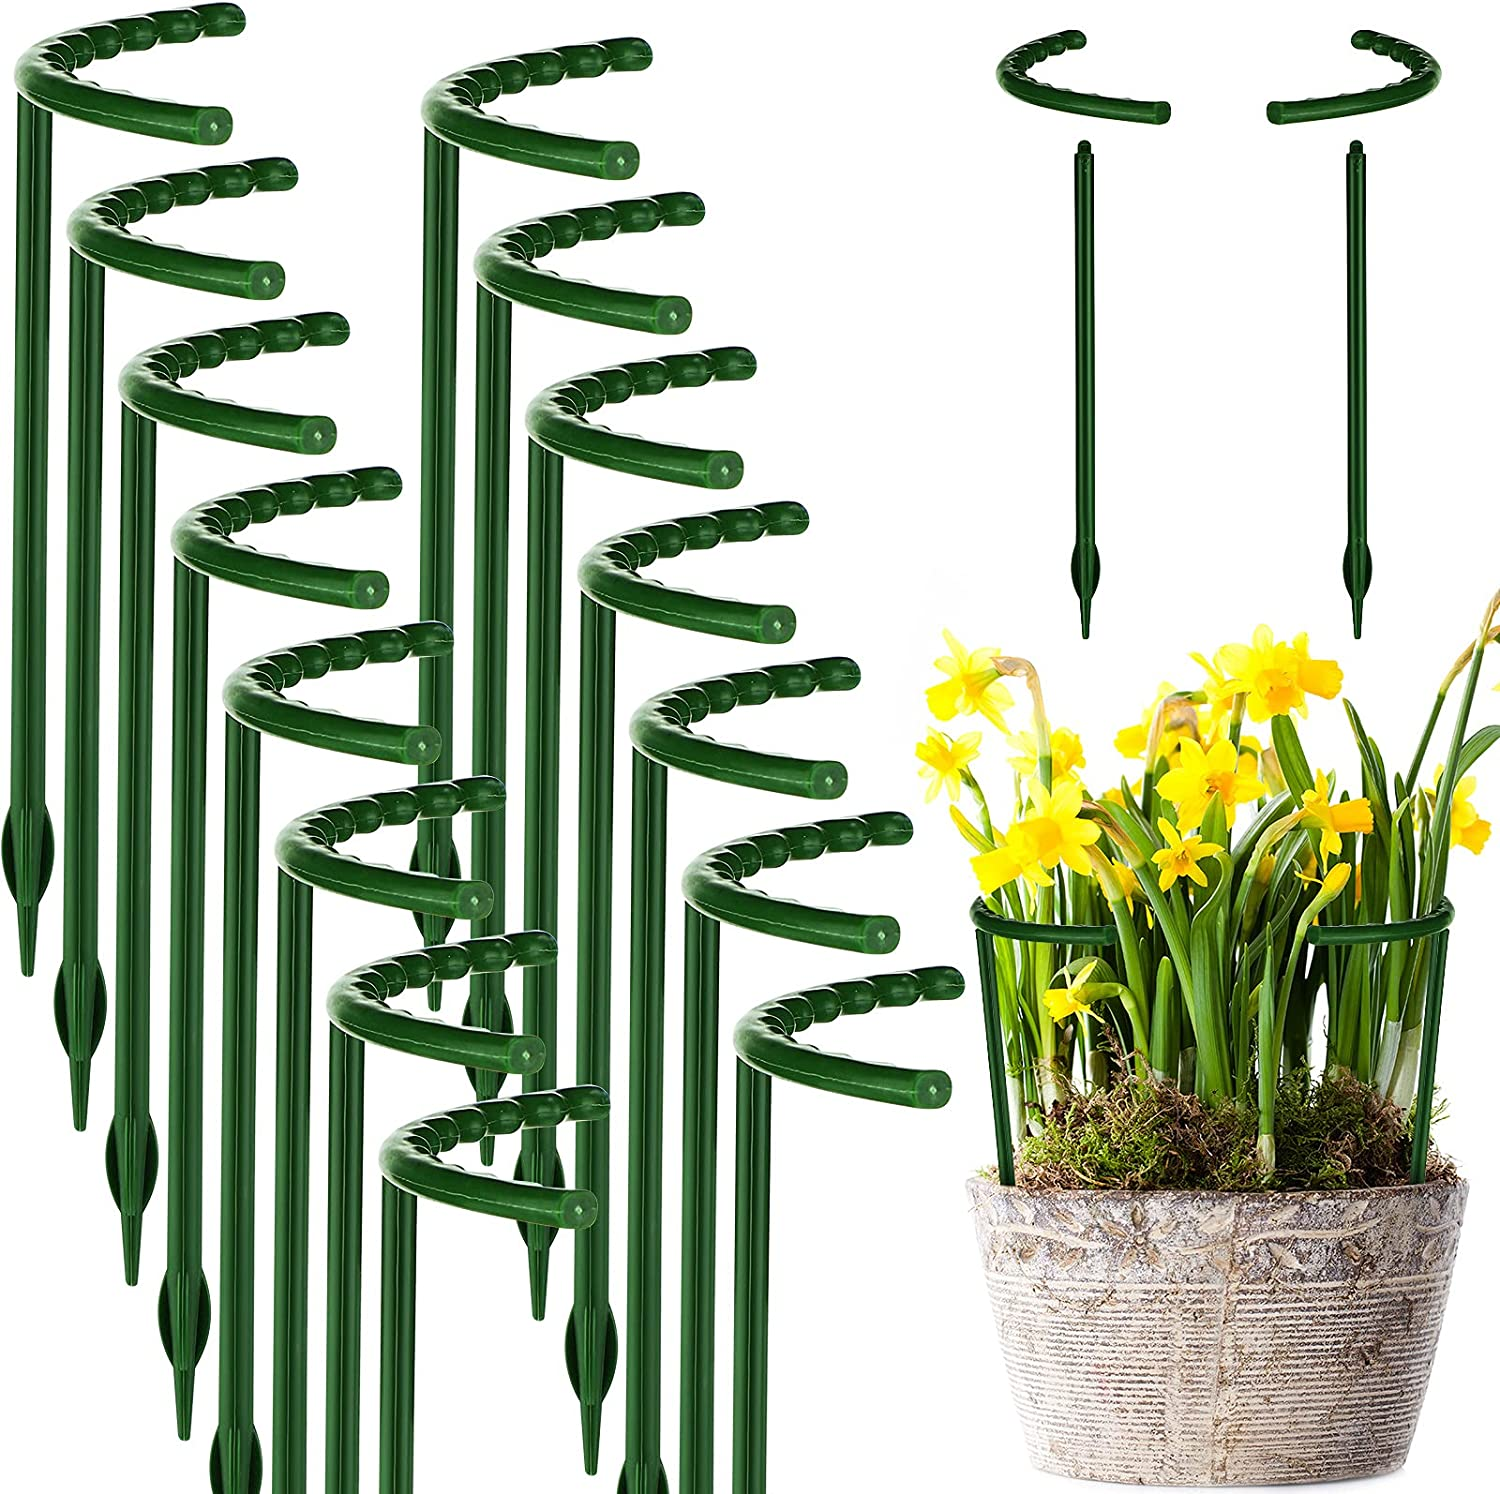 Plant Support Garden Flower Support Stake Half Round Plant Support Ring Plastic Plant Cage Holder Flower Pot Climbing Trellis for Small Plant Flower Vegetable (5.7 x 5.9 Inch,15 Pieces)